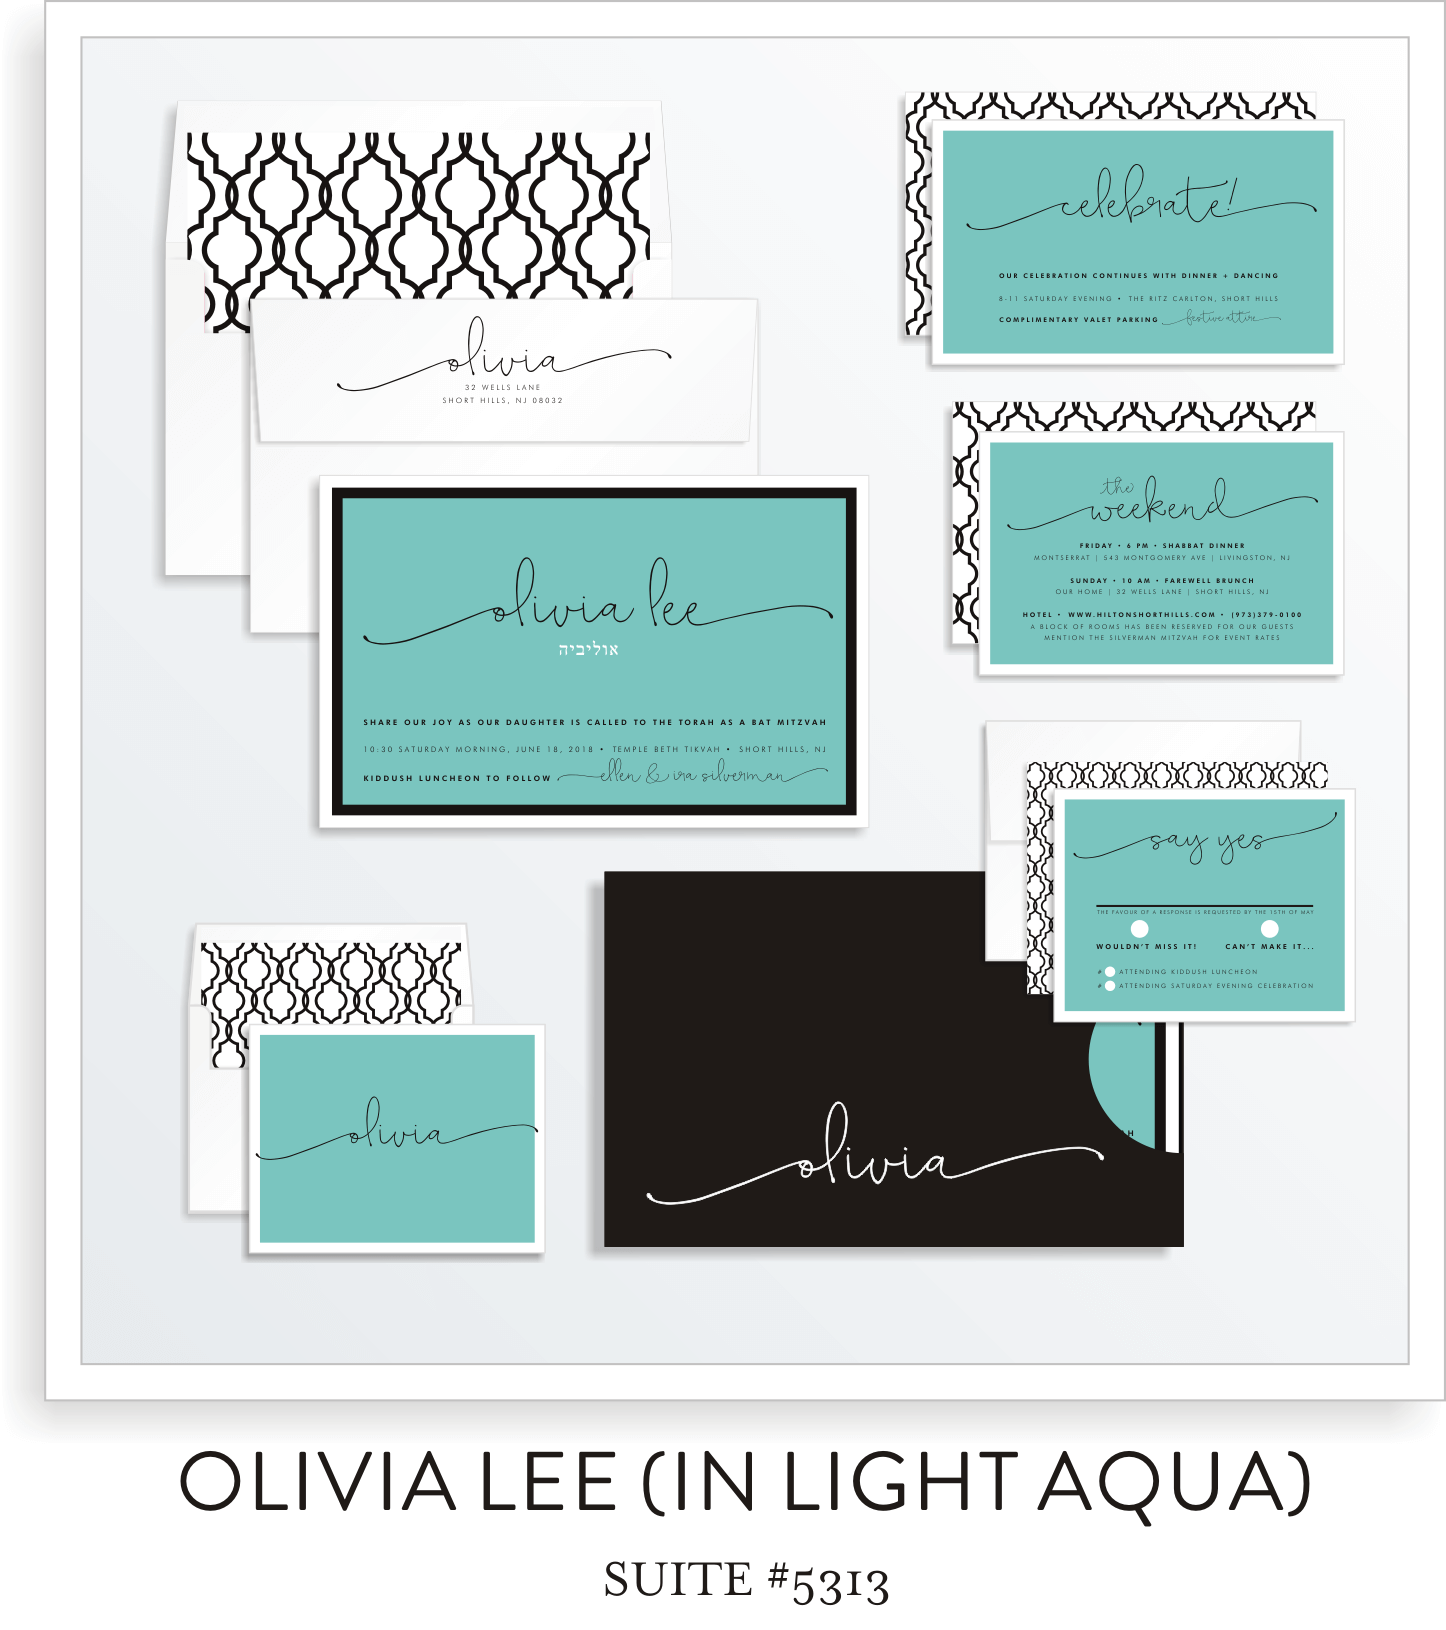 Copy of BAT MITZVAH SUITE 5313-OLIVIA LEE (IN LIGHT AQUA)